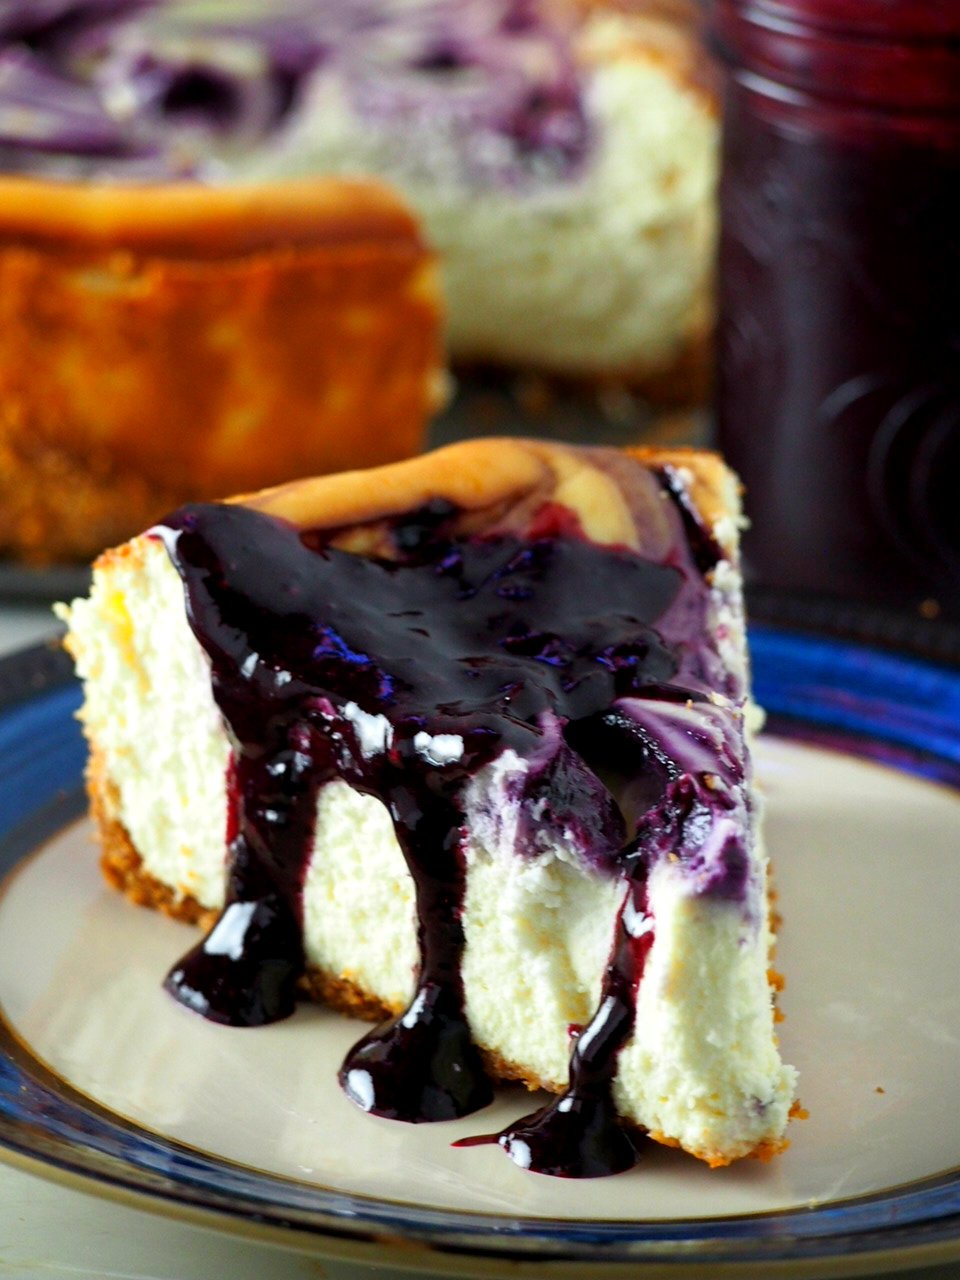 With blueberry swirls and a generous drizzling of blueberry syrup upon serving, this Blueberry Cheesecake is just the perfect one you will ever need!